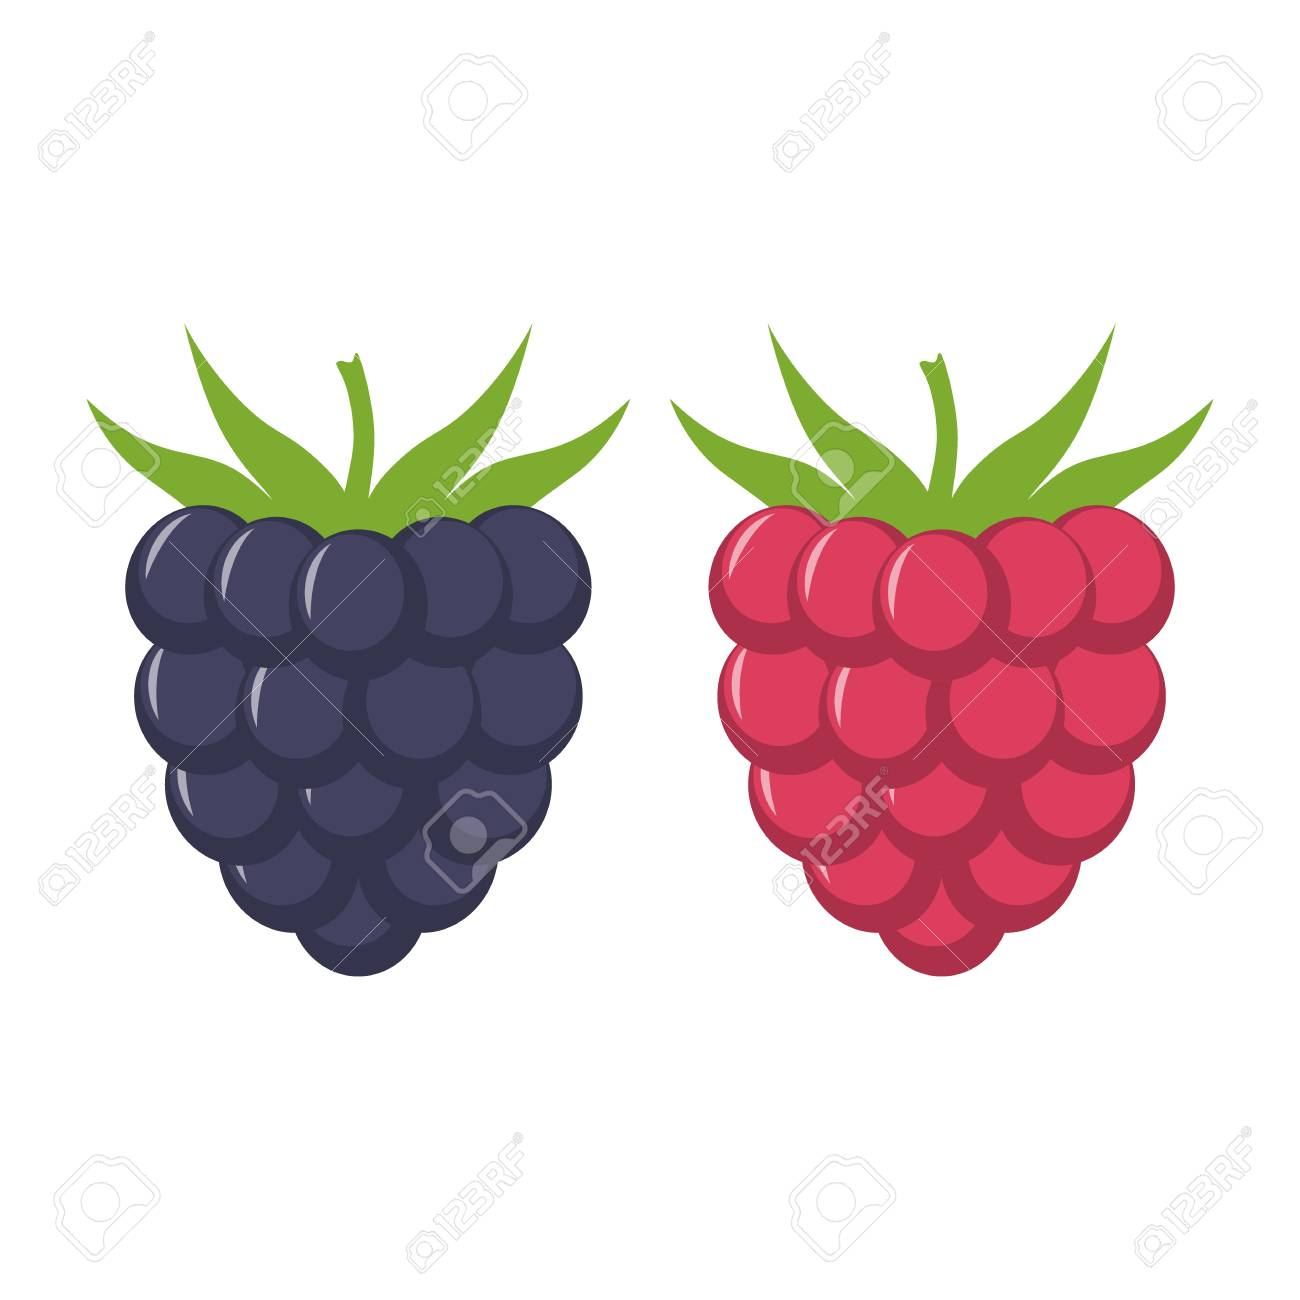 Blackberry and raspberry with leaves vector icon. Blackberry and raspberry  icon clipart. Blackberry and